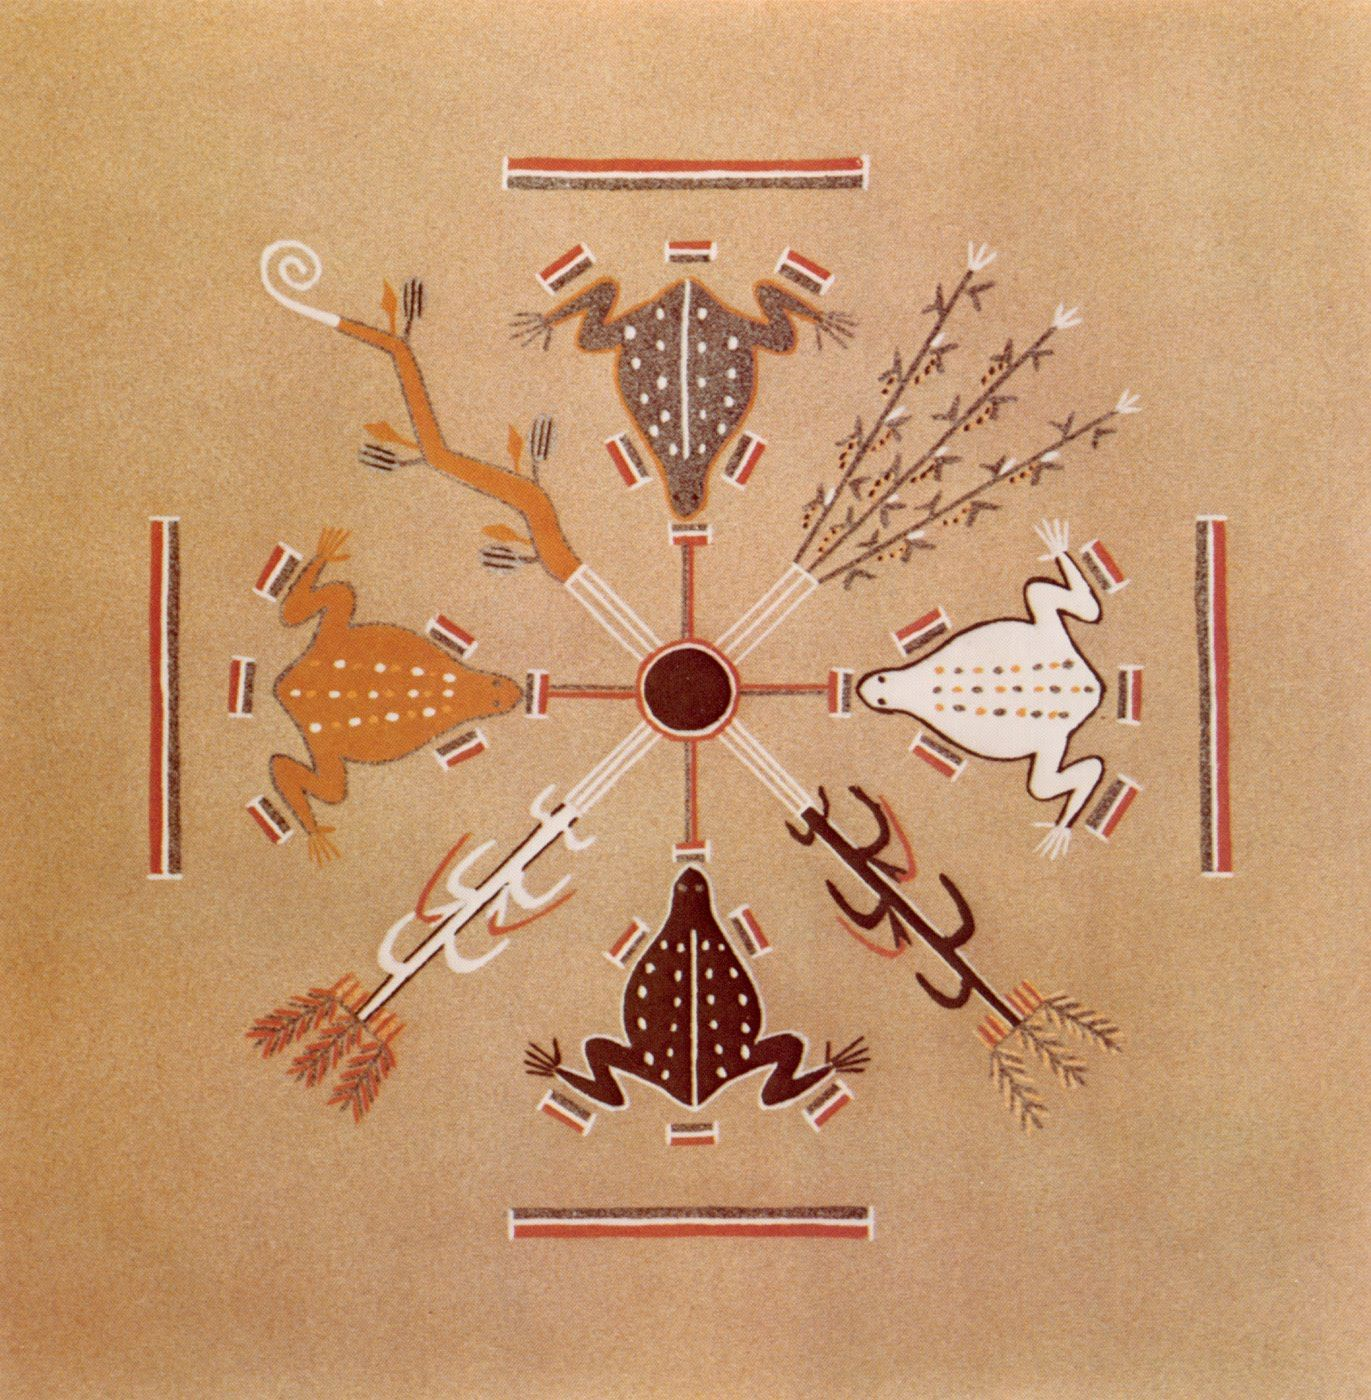 Frogs and the four sacred plants eugene baatsoslanii joe mark frogs and the four sacred plants eugene baatsoslanii joe mark bahti navajo sandpainting biocorpaavc Images